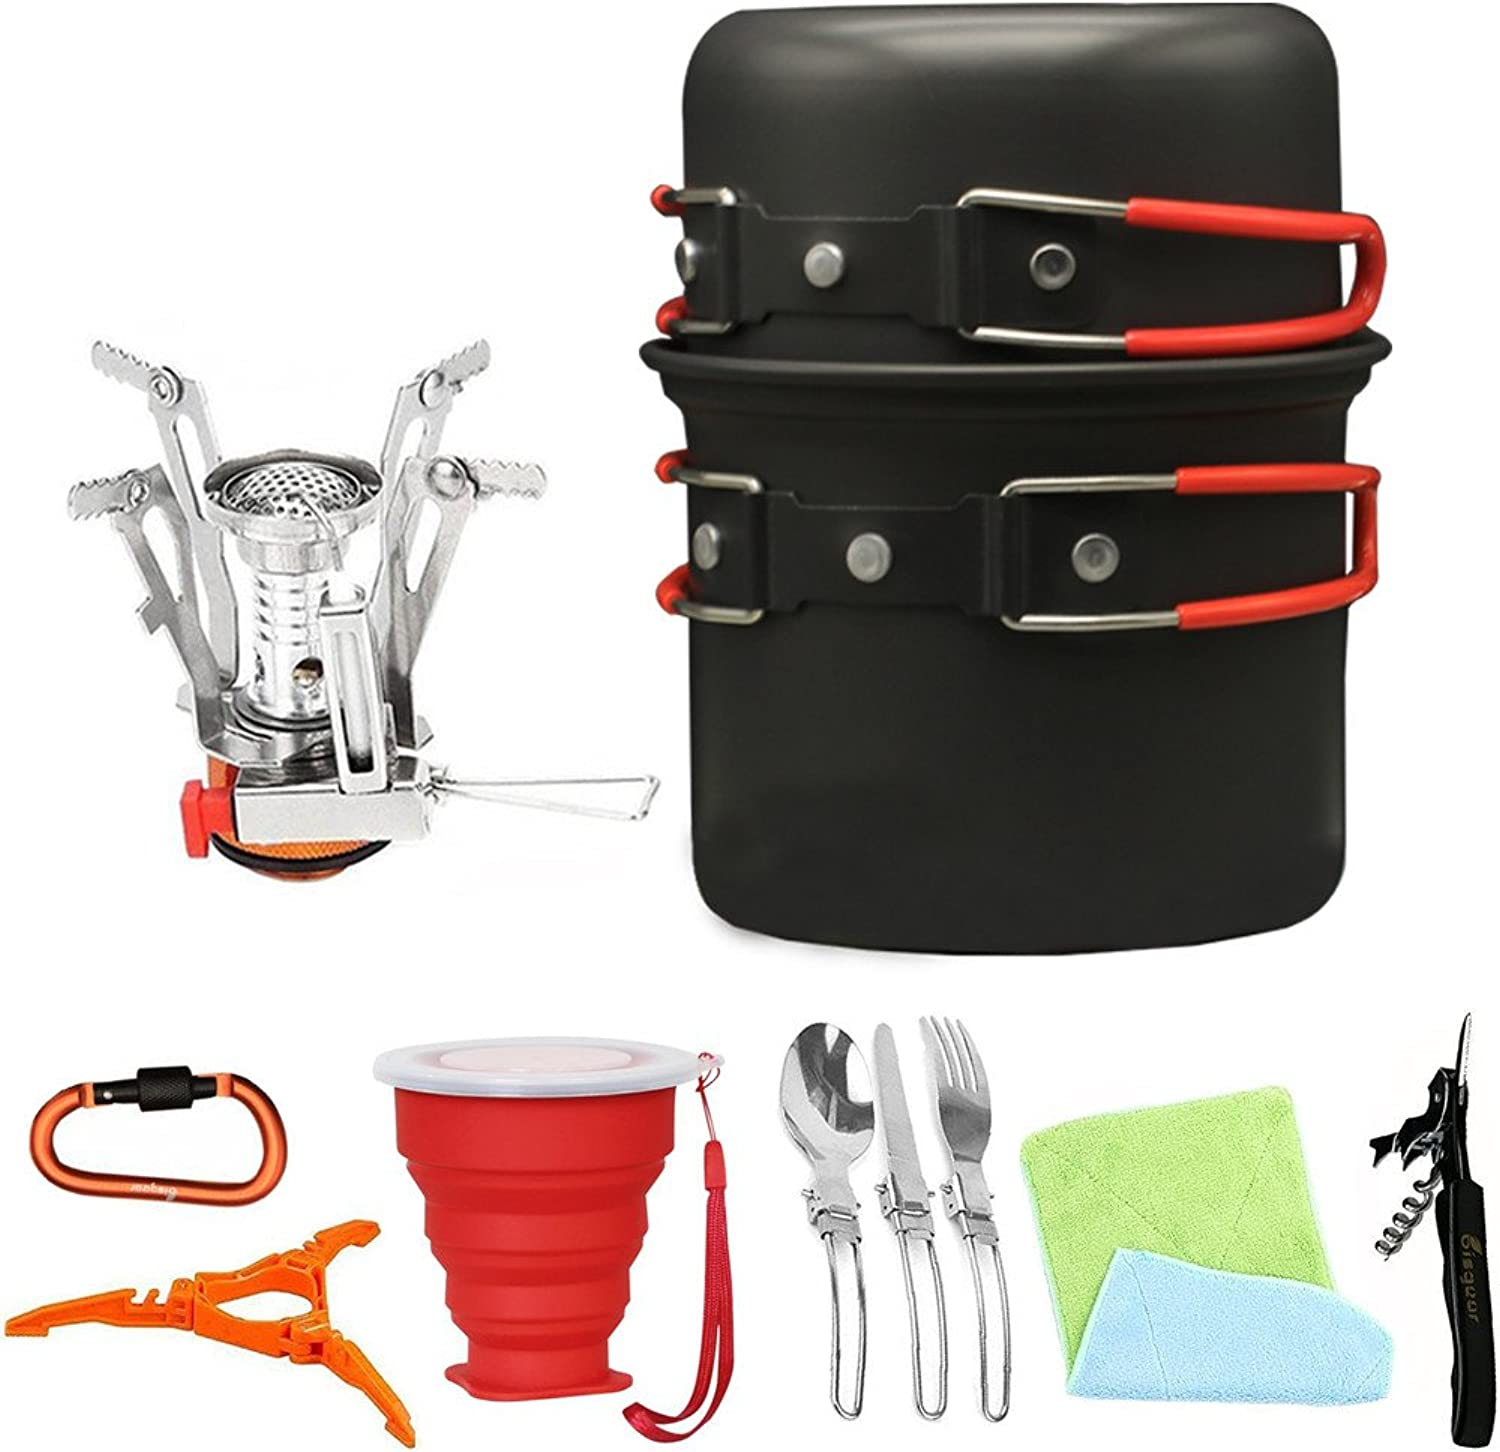 13pcs Camping Cookware Stove Carabiner Canister Stand Tripod Collapsible Cup Utensils Mess Kit Backpacking Cooking Gear Hiking Pot Pans Outdoors Cookset Bug Out Bag Wine Opener